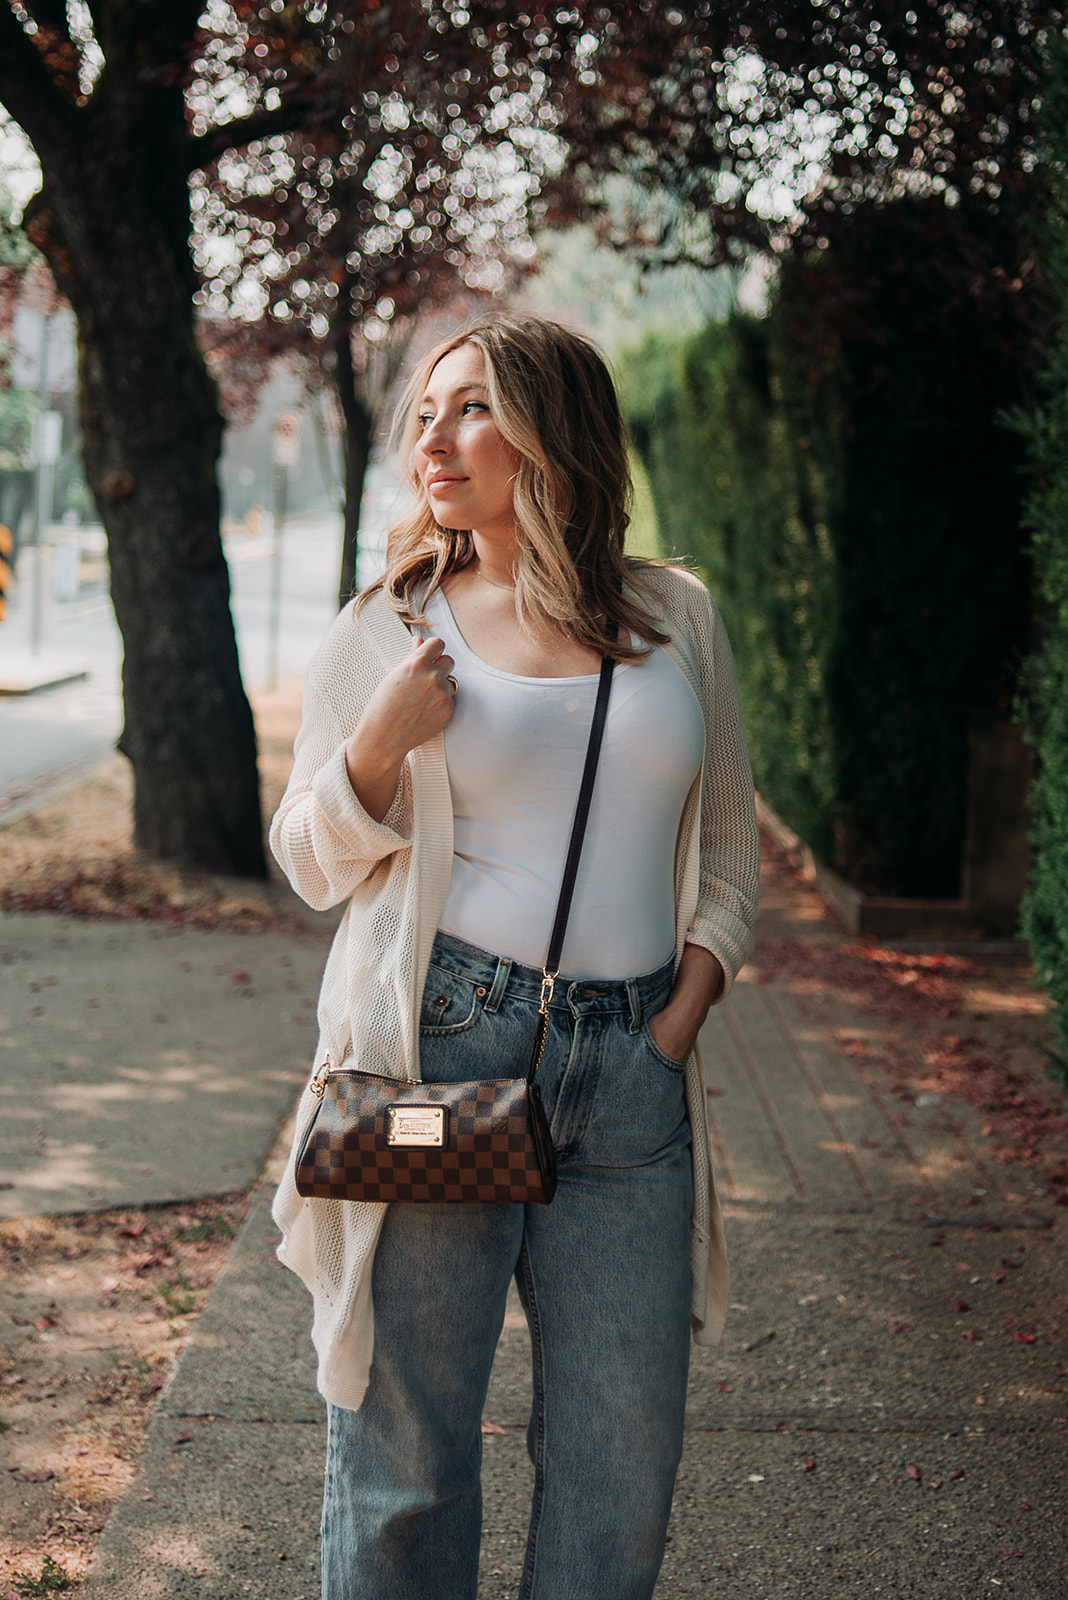 Nadia Albano, Daniella Guzzo Photography, Sweater Season, Sweater, Levi's Jeans, Vintage Levi's Jeans, Lucky Brand Cardigan Sweater, The Latest Scoop, Mules, Louis Vuitton, Fashion, Style